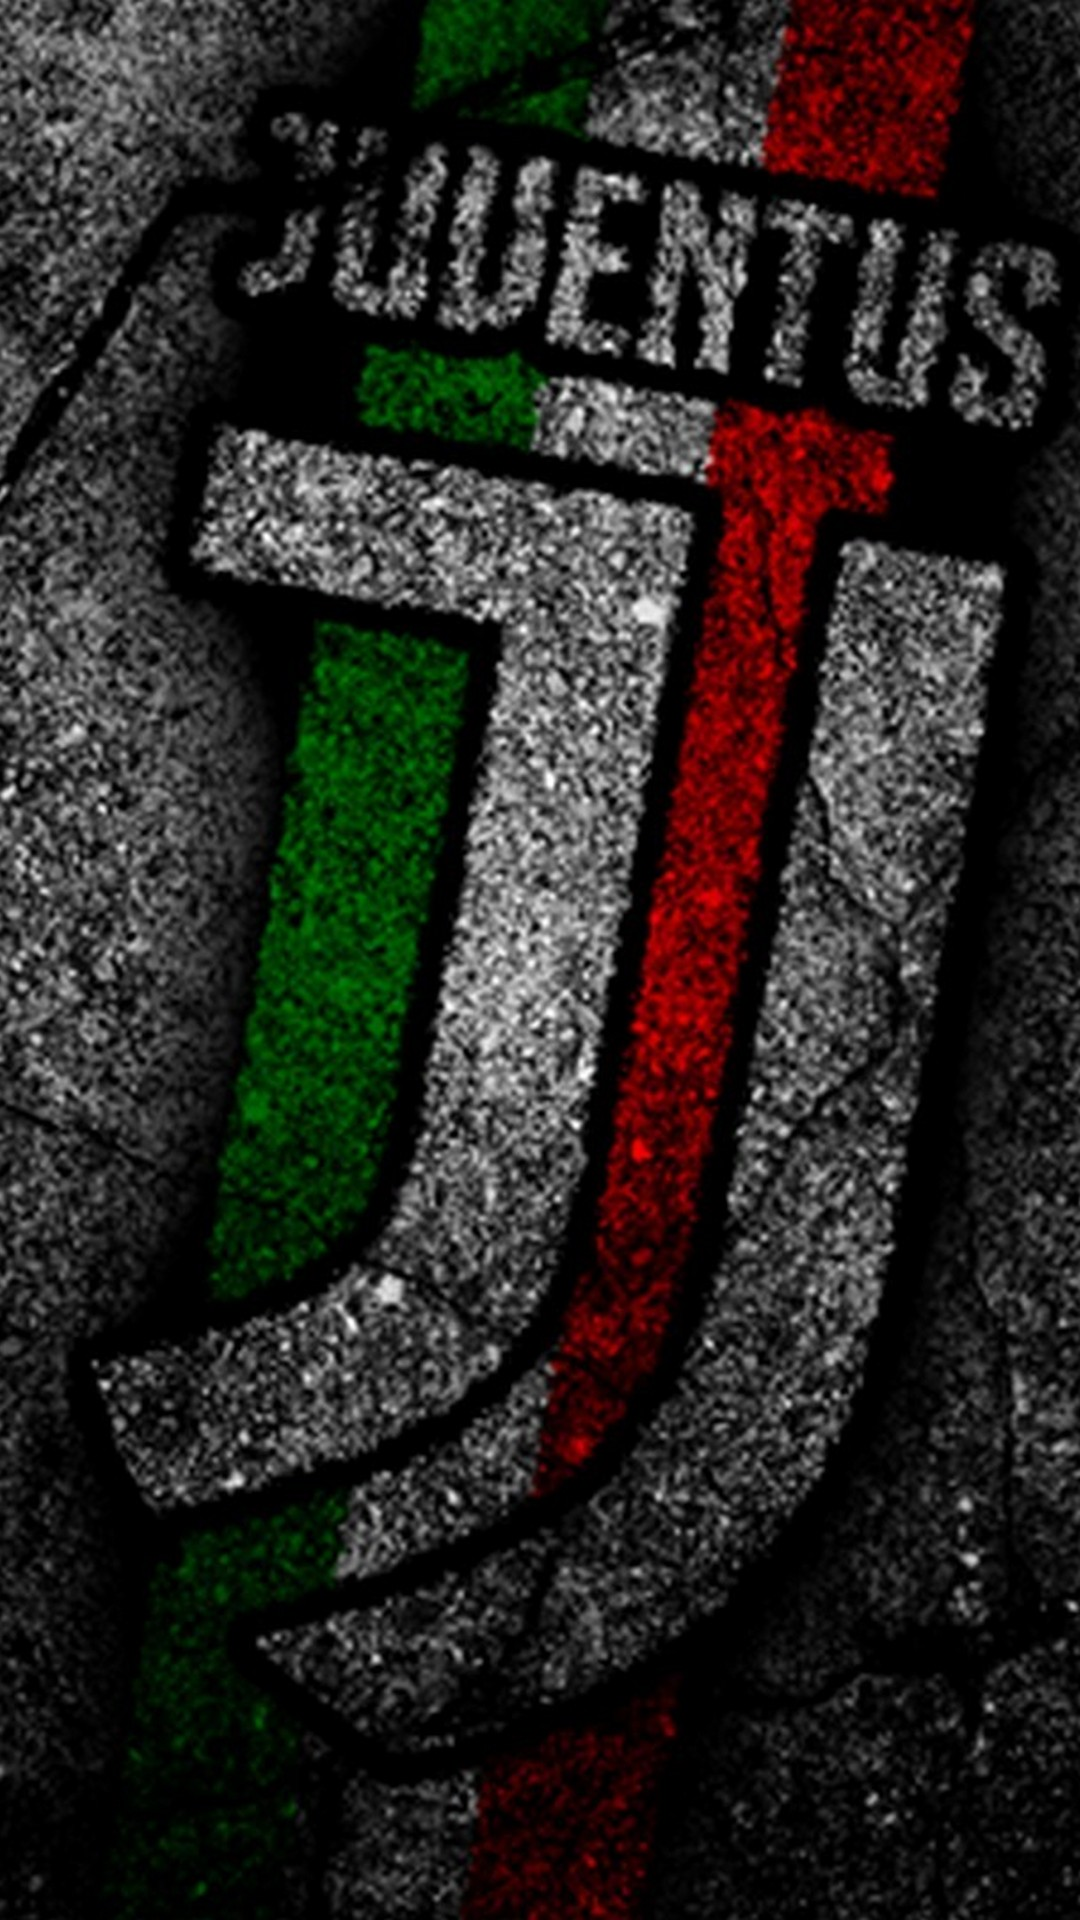 3d Wallpaper For Android Phone Download Juventus Fc Hd Wallpaper For Iphone 2018 Football Wallpapers